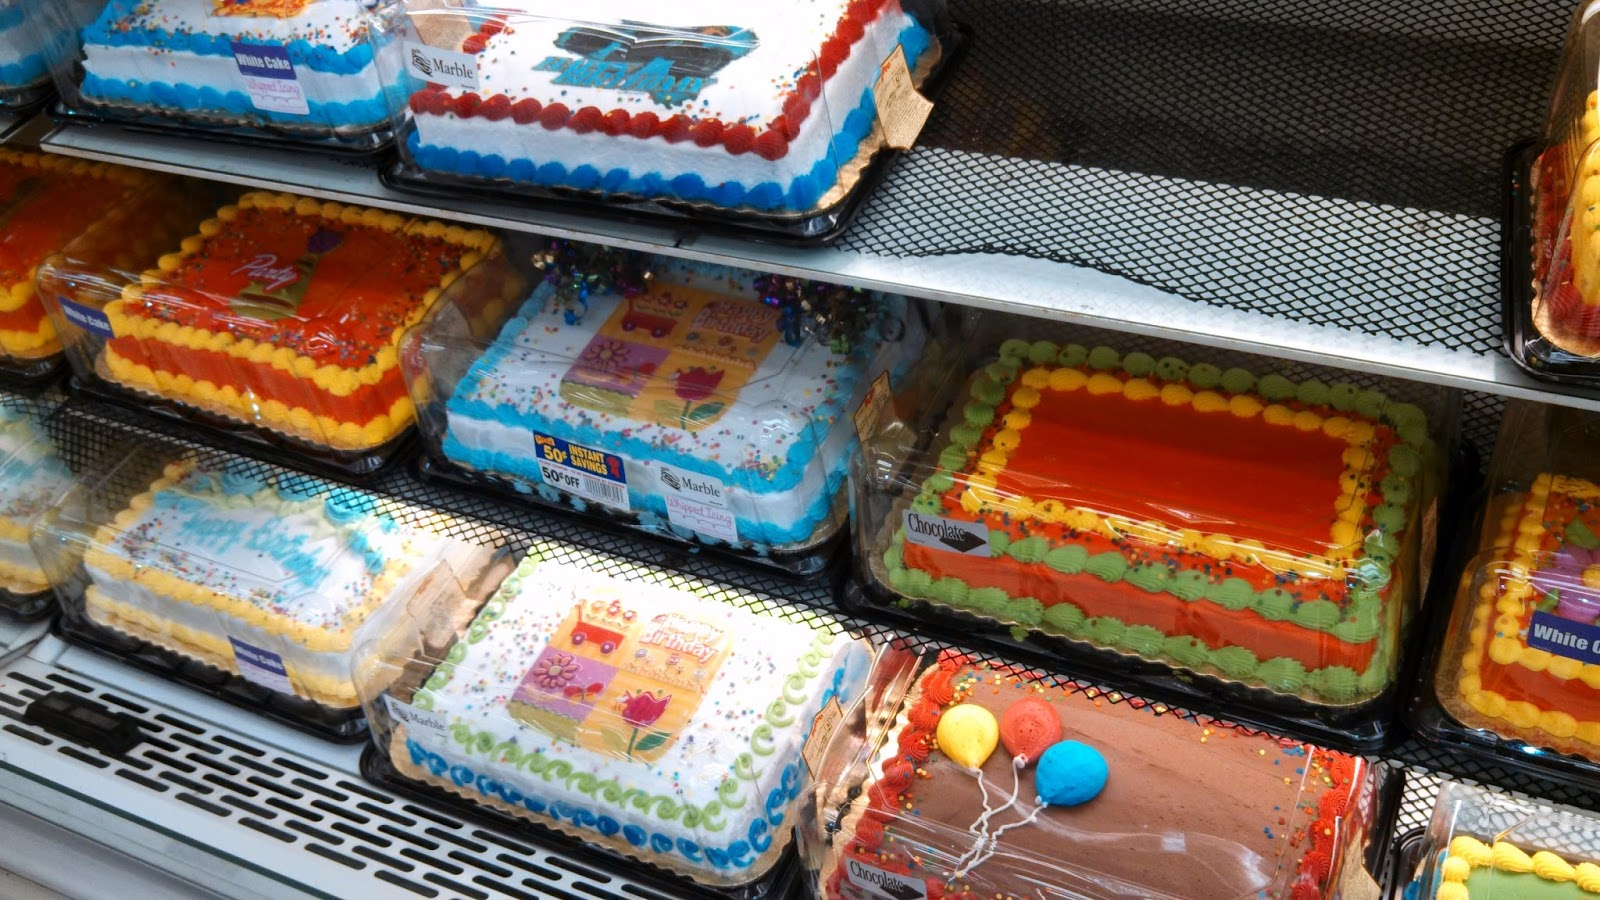 Pleasing 8 Birthday Cakes From Grocery Stores Photo Grocery Store Bakery Personalised Birthday Cards Paralily Jamesorg